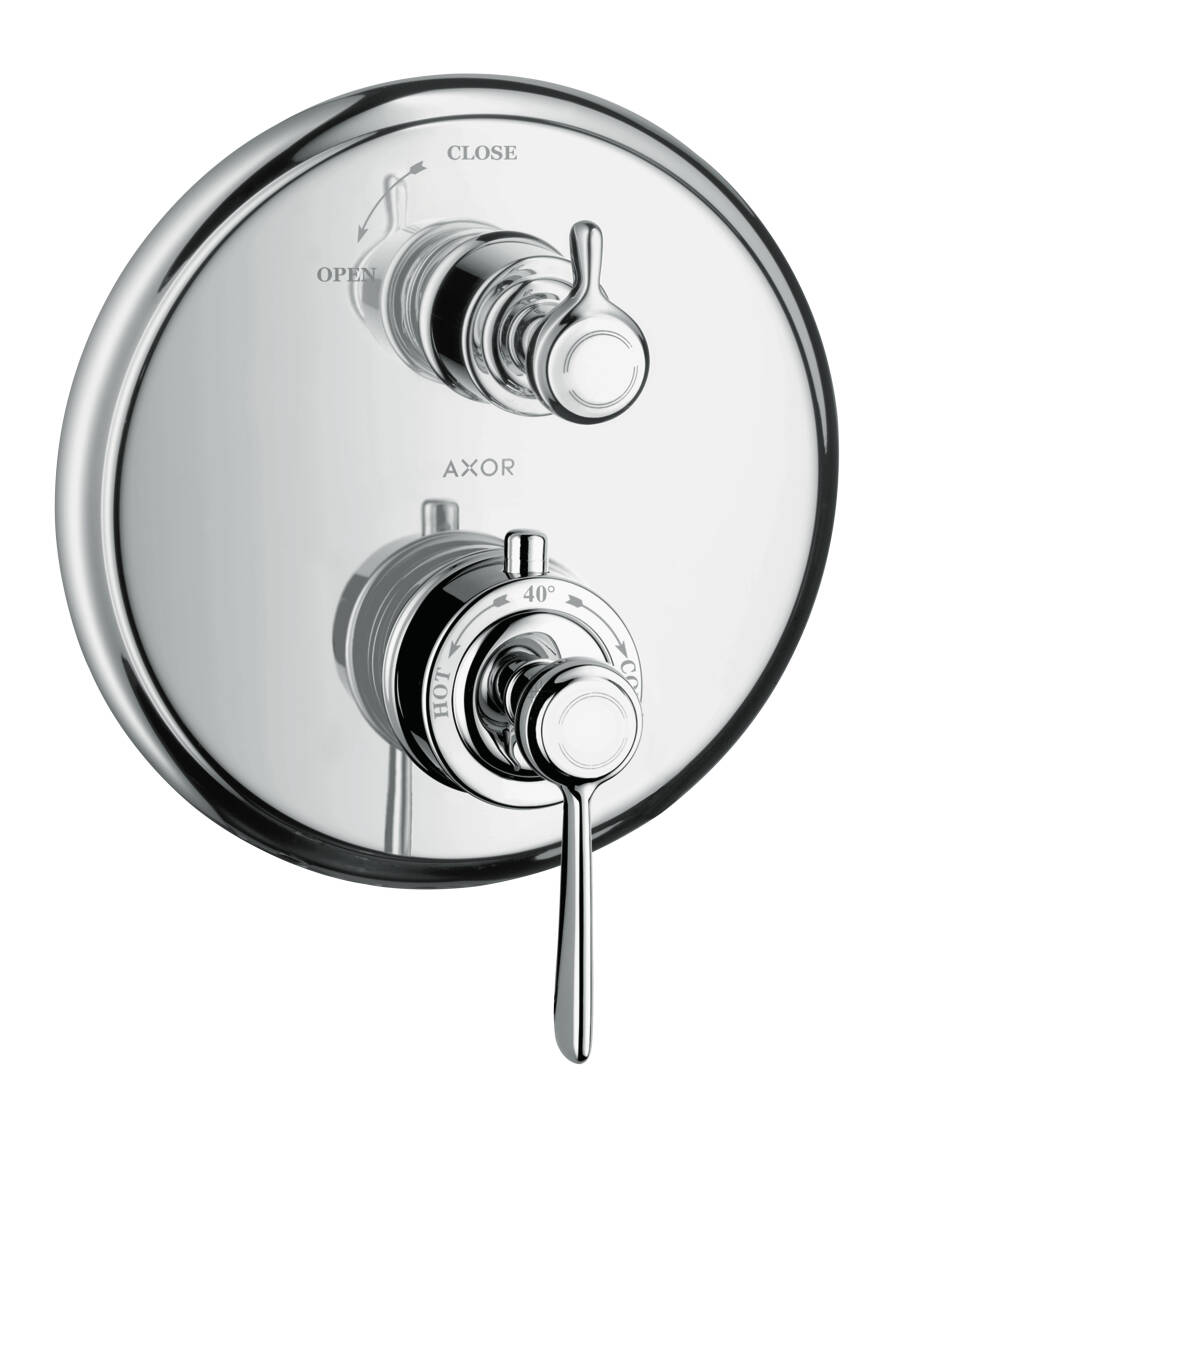 Thermostat for concealed installation with lever handle and shut-off valve, Brushed Gold Optic, 16801250